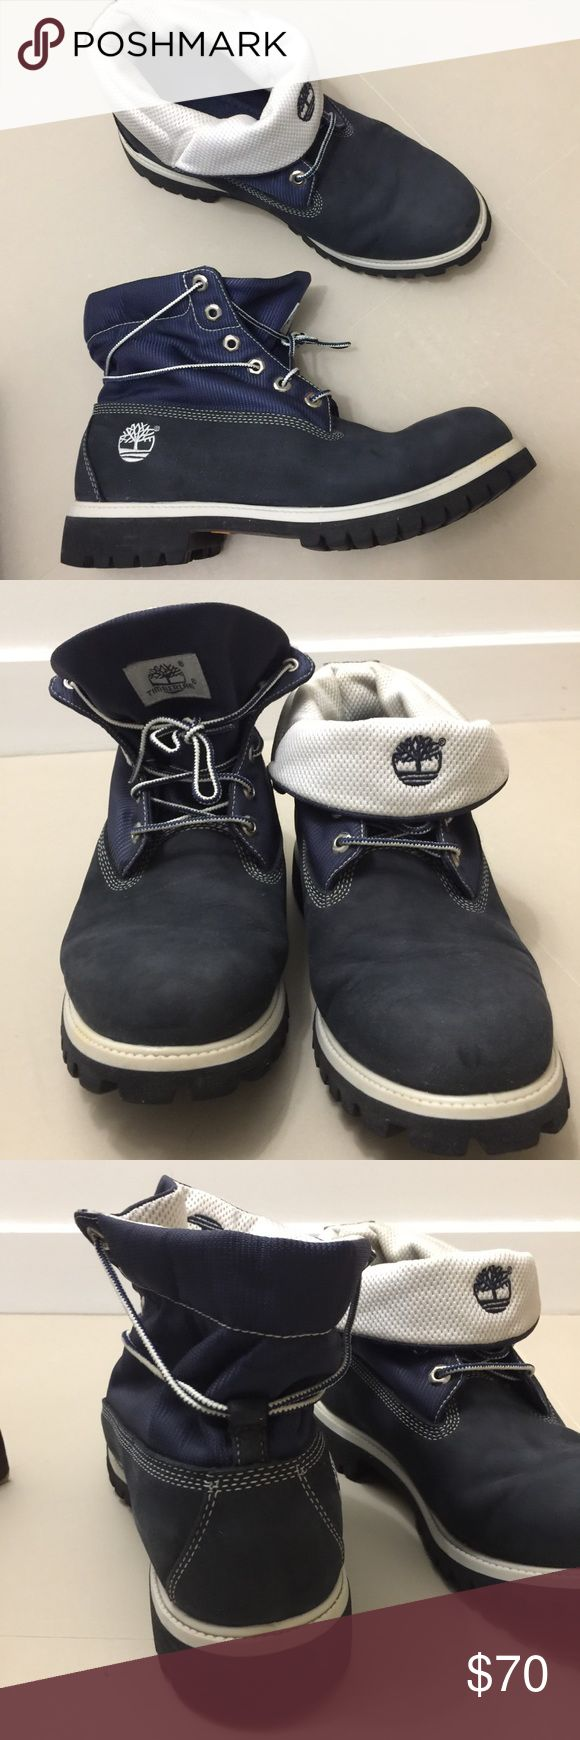 Men's Timberland Blue Suede Roll Tops Navy blue suede with white Timberland roll top boots in excellent condition. Can be worn up or rolled down. Size 10.5 Timberland Shoes Boots